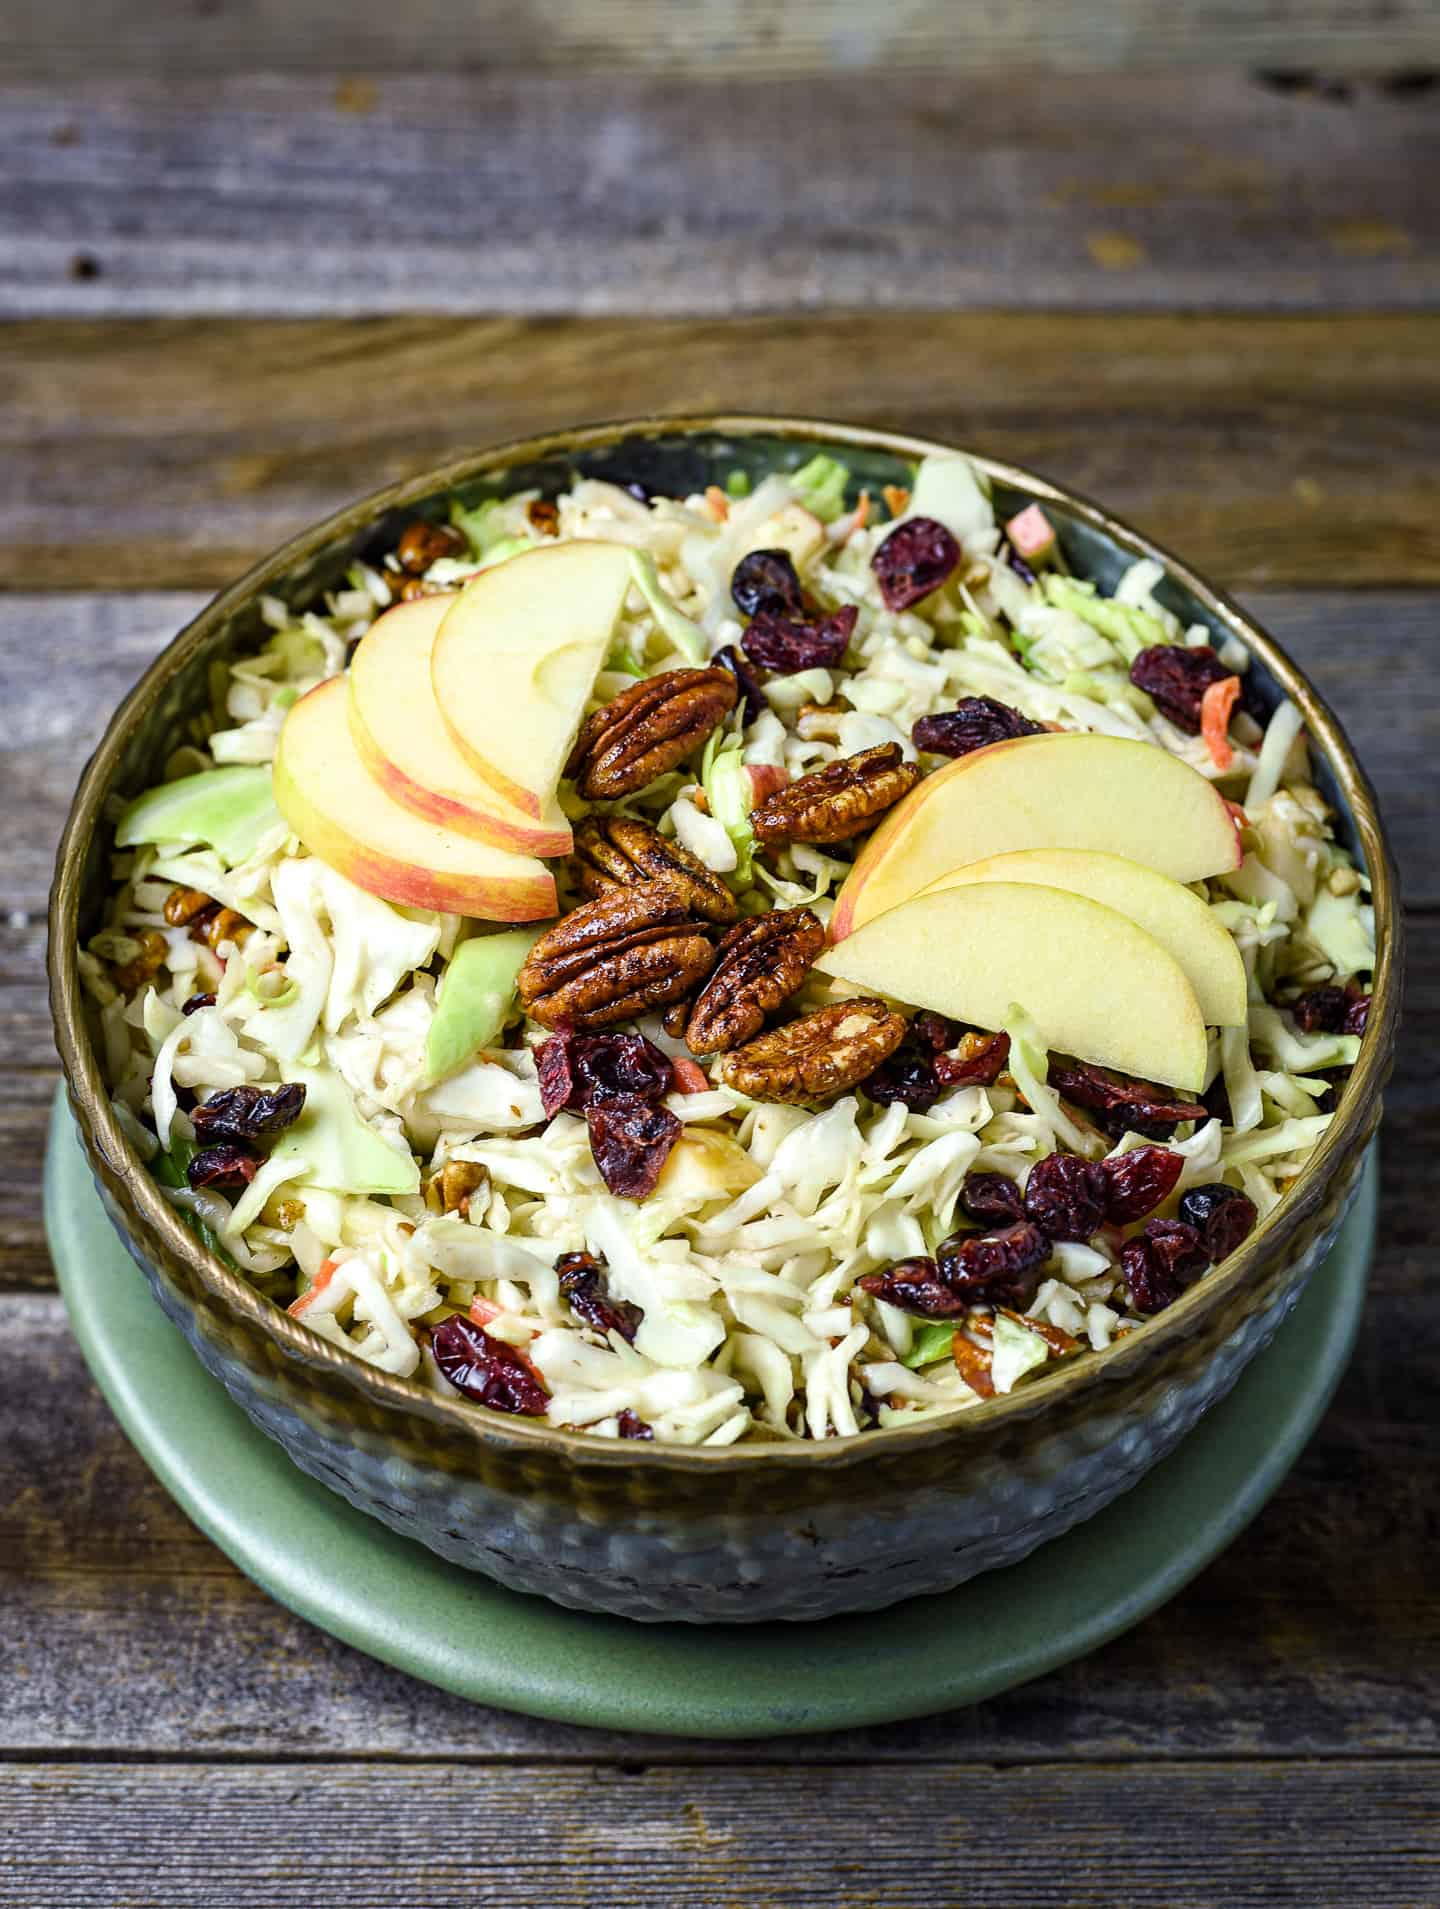 Apple cranberry coleslaw in bowl topped with pecans and apples.